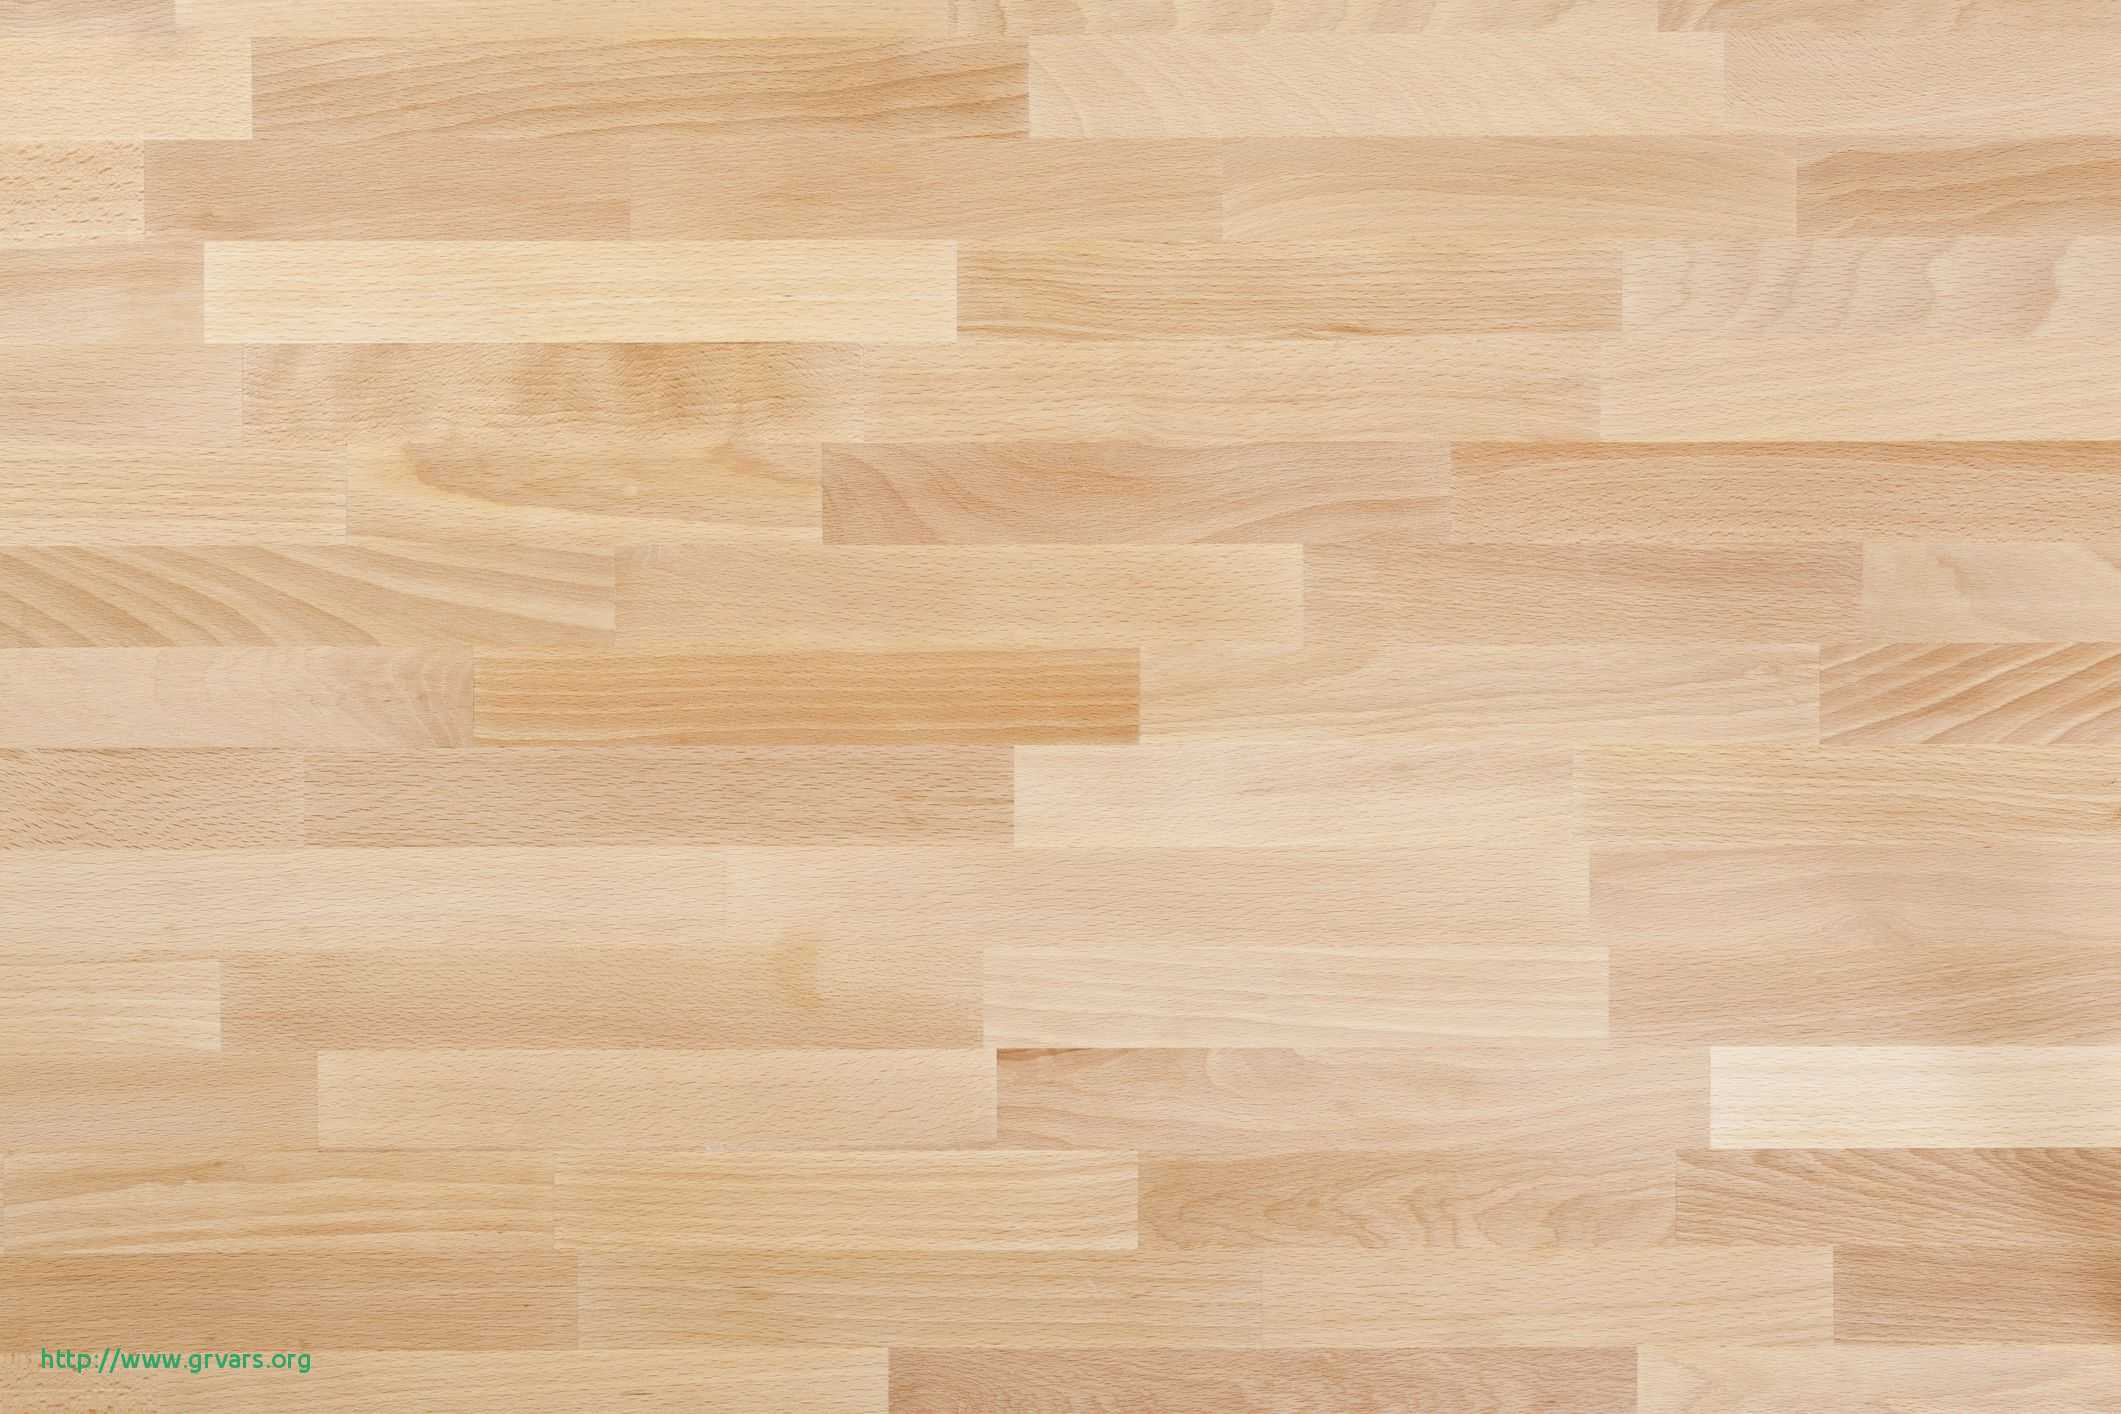 hardwood flooring hawaii of 17 nouveau where is pergo flooring made ideas blog pertaining to laminate flooring 58ff f9b581d595e760f